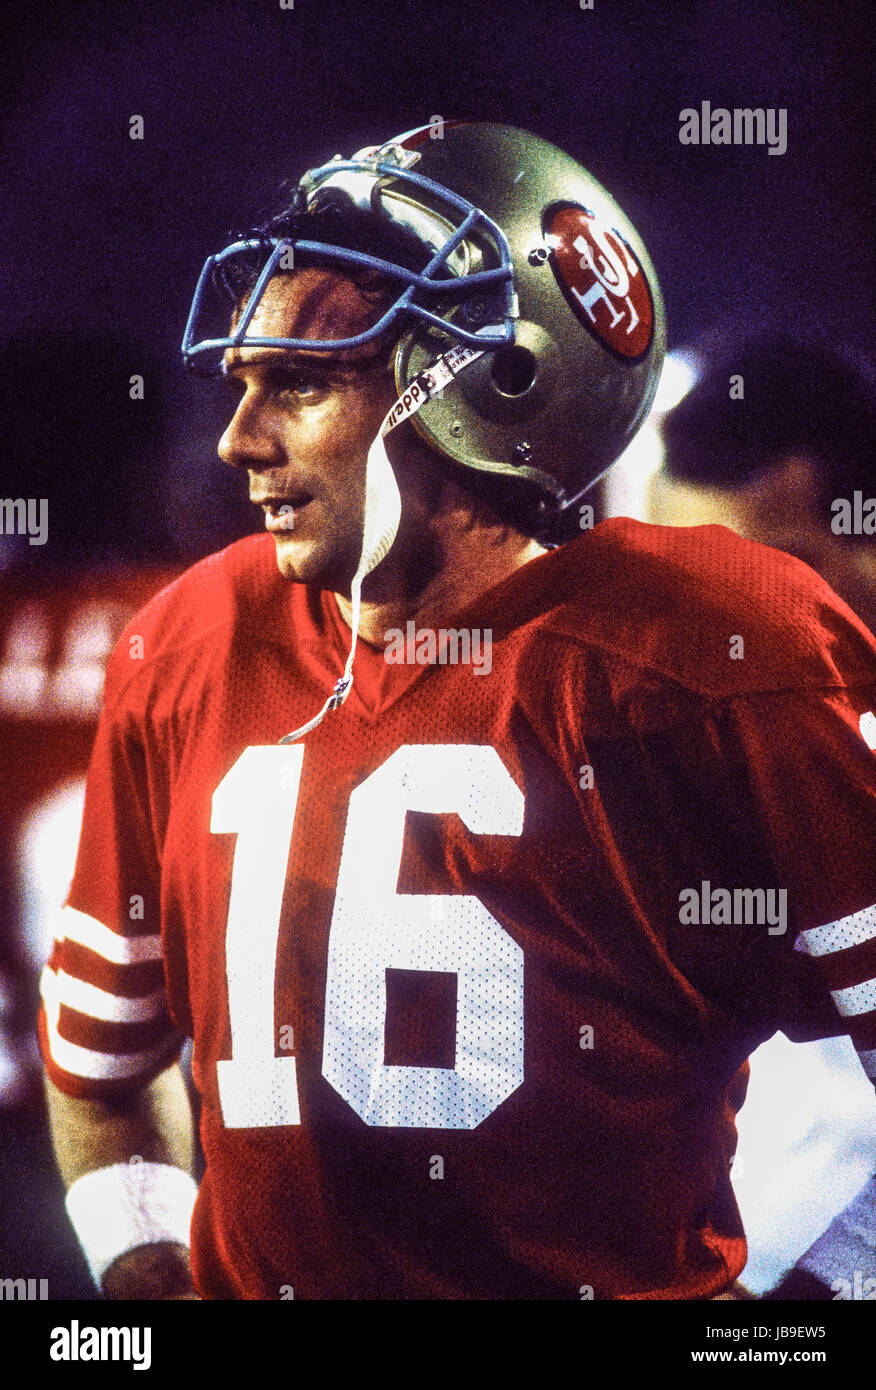 Joe Montana San Francisco 49ers quarterback al 1989 Super Bowl Immagini Stock